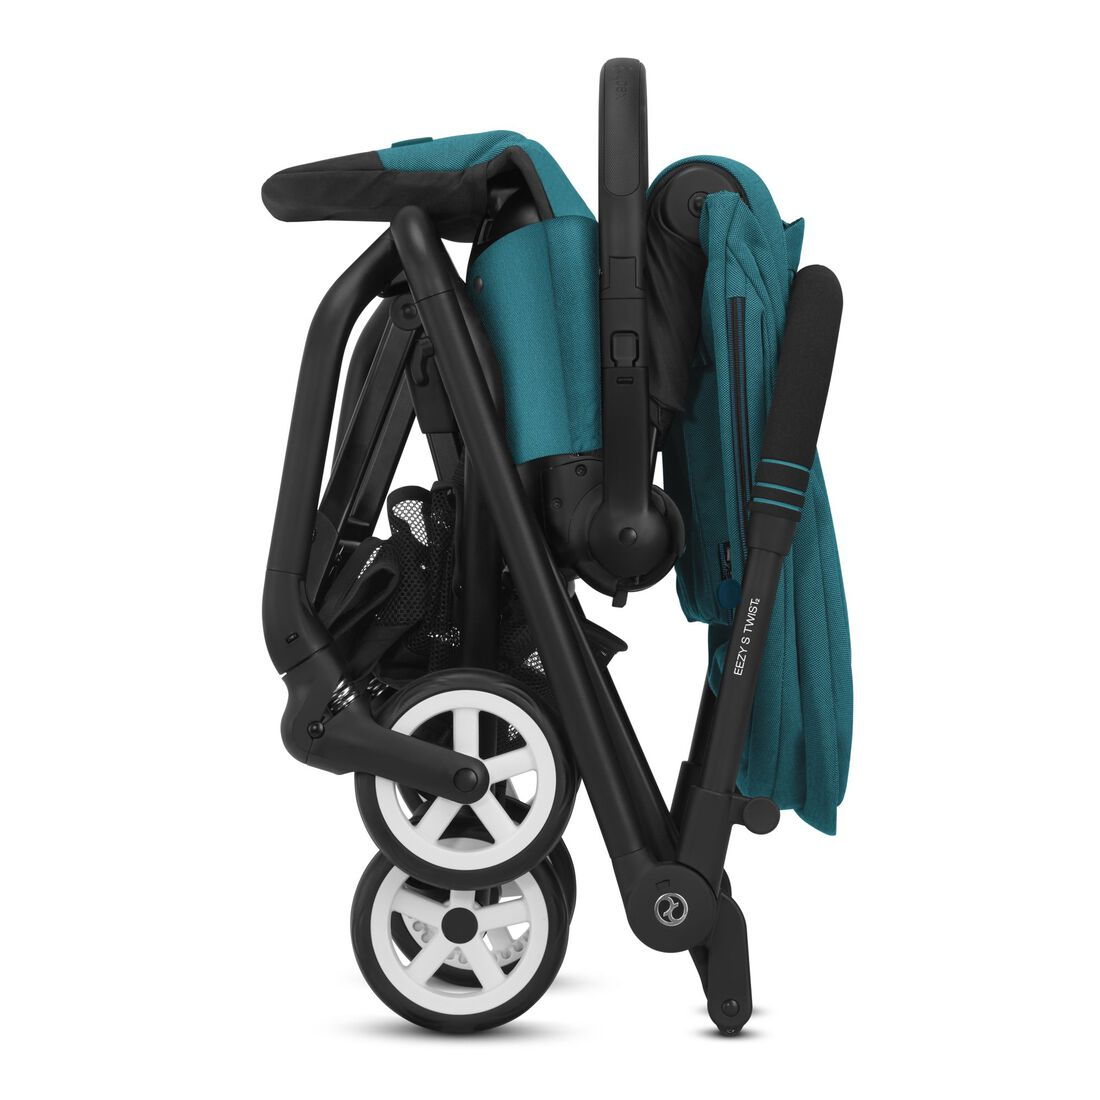 CYBEX Eezy S Twist 2 - River Blue (Schwarzer Rahmen) in River Blue (Black Frame) large Bild 5